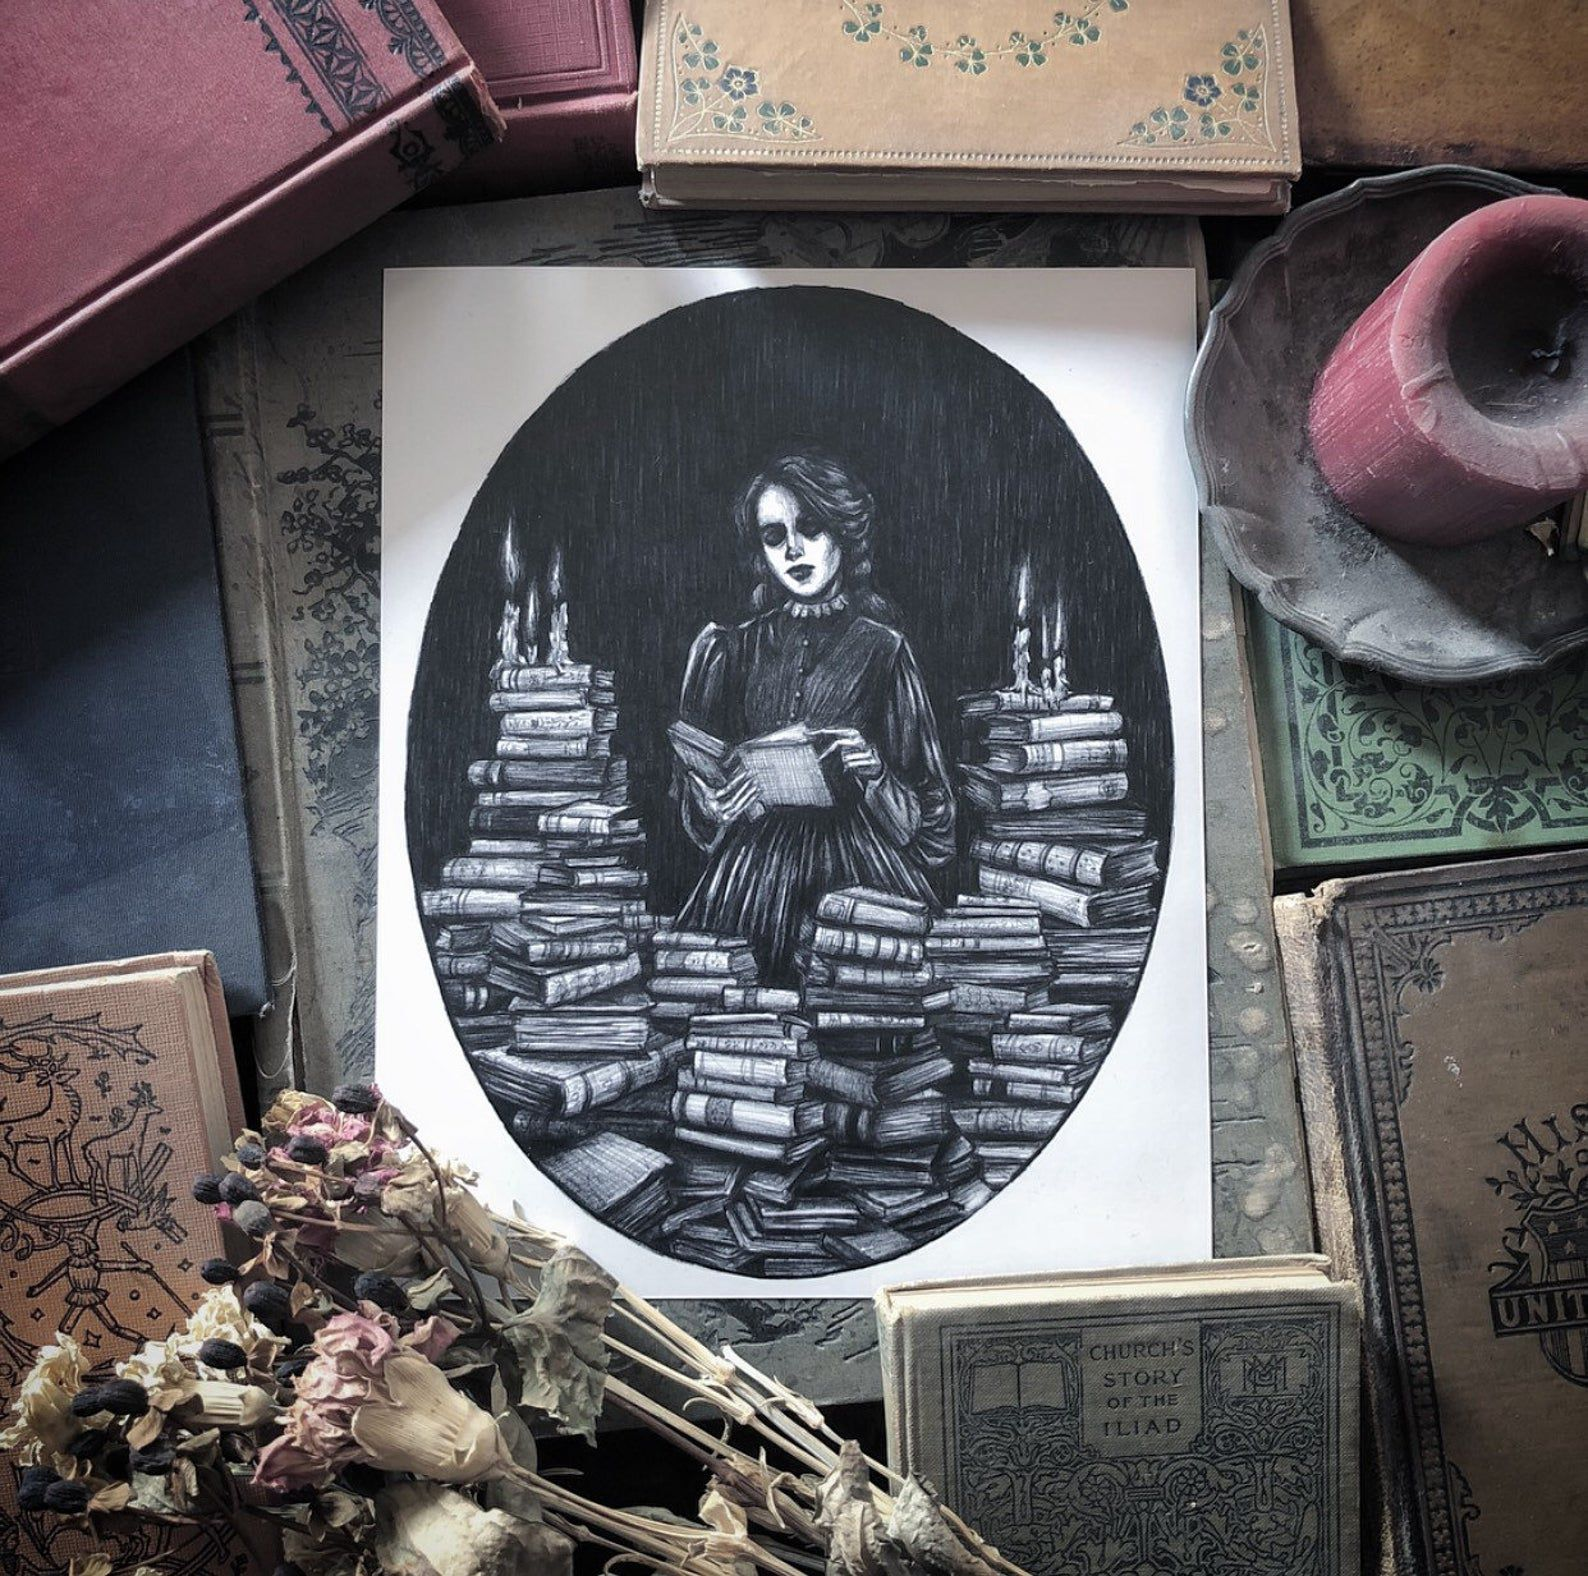 Black and white image of a girl surrounded by books.